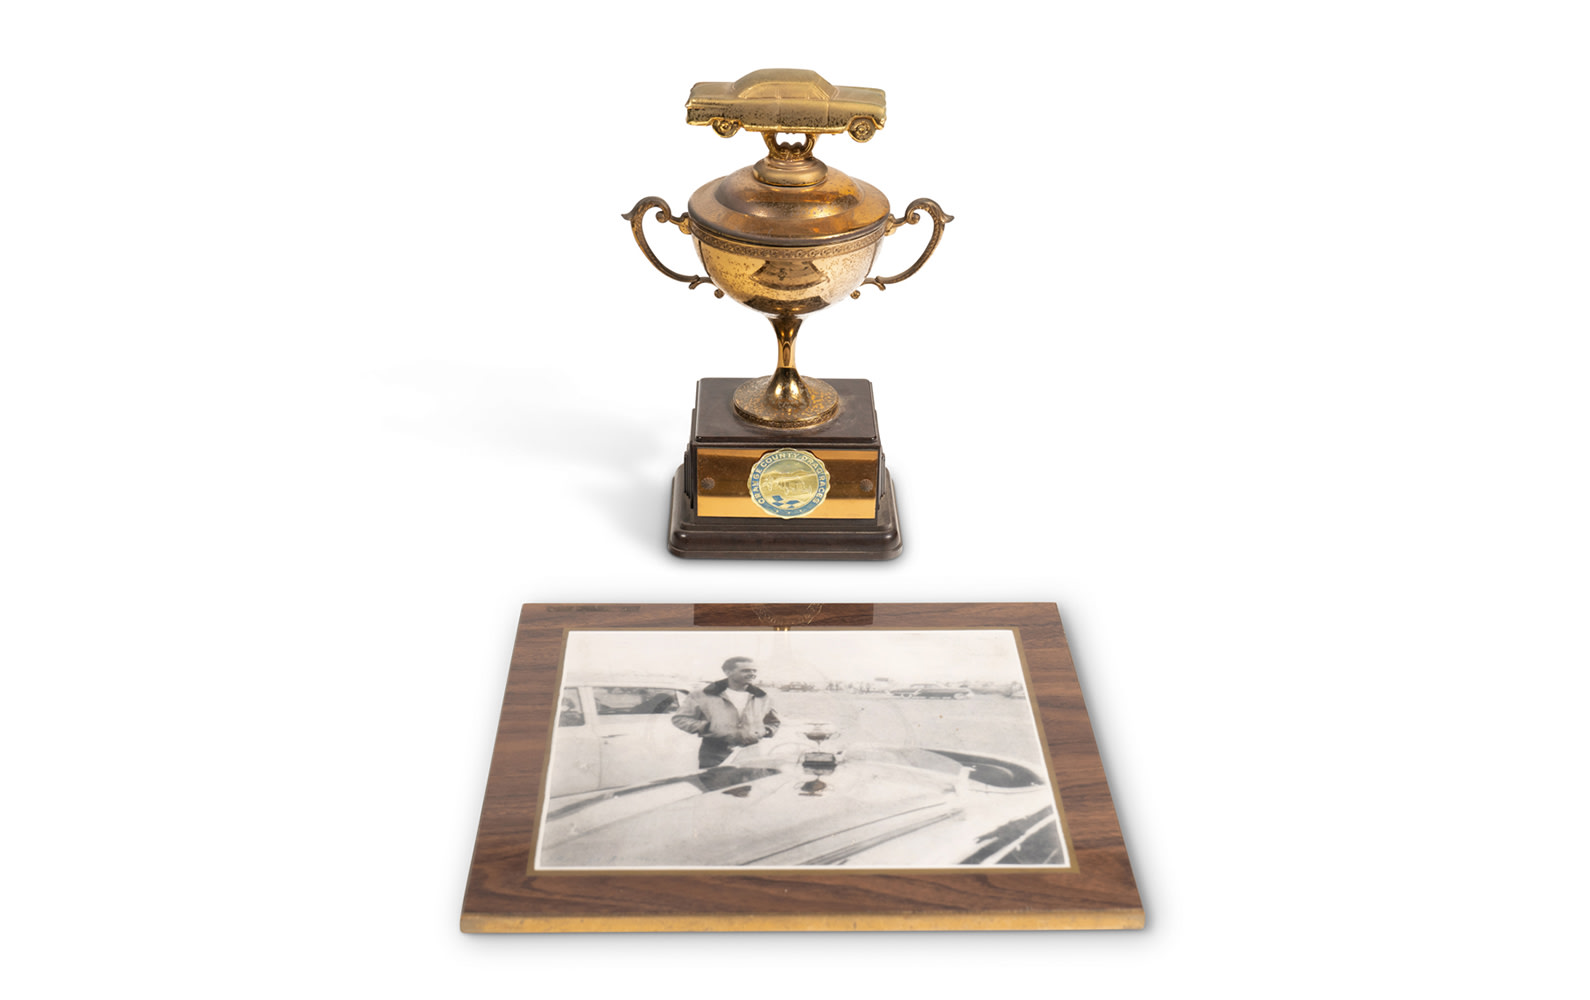 1951 Orange County Drag Races Trophy and Photograph of Phil Hill at Event